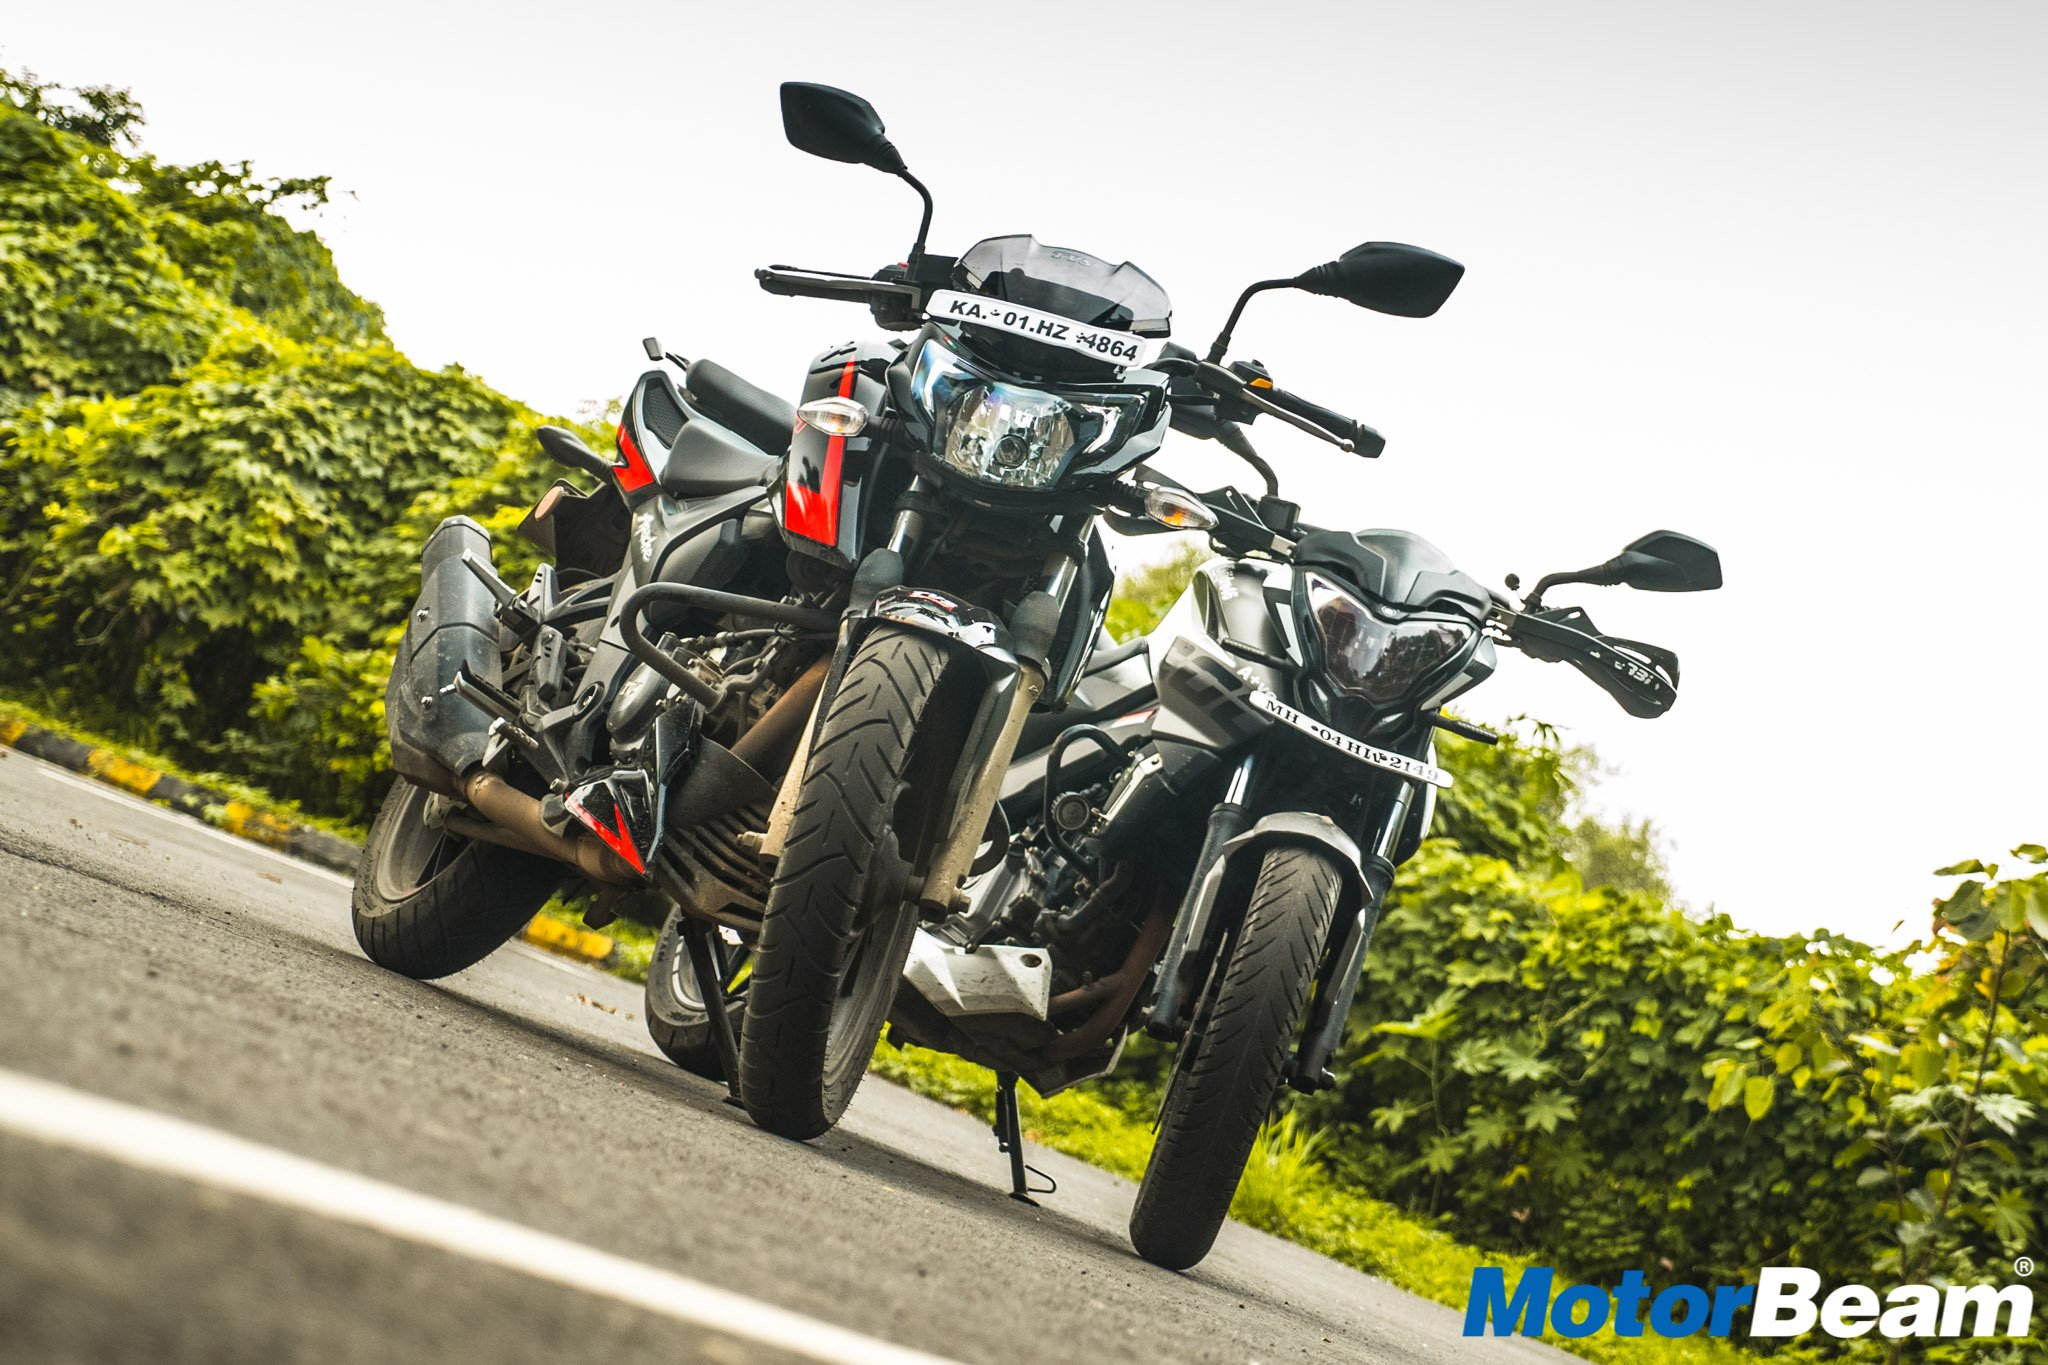 Bajaj Pulsar NS 200 vs TVS Apache 200 4V Comparison Review